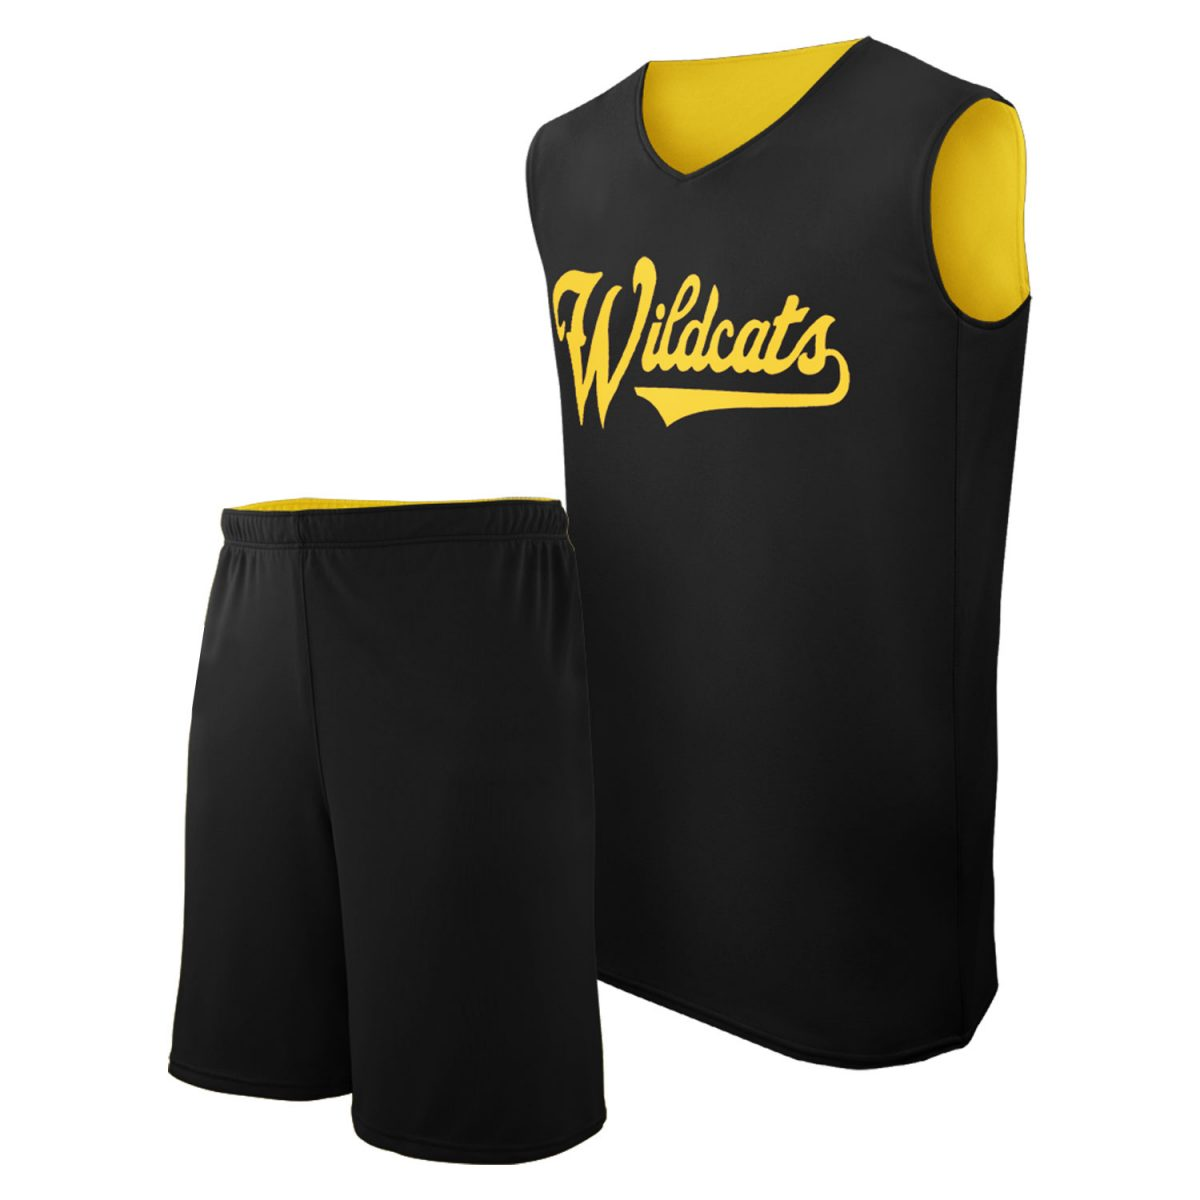 Boys Basketball Uniforms Manufacturers in Jalandhar in Bahrain